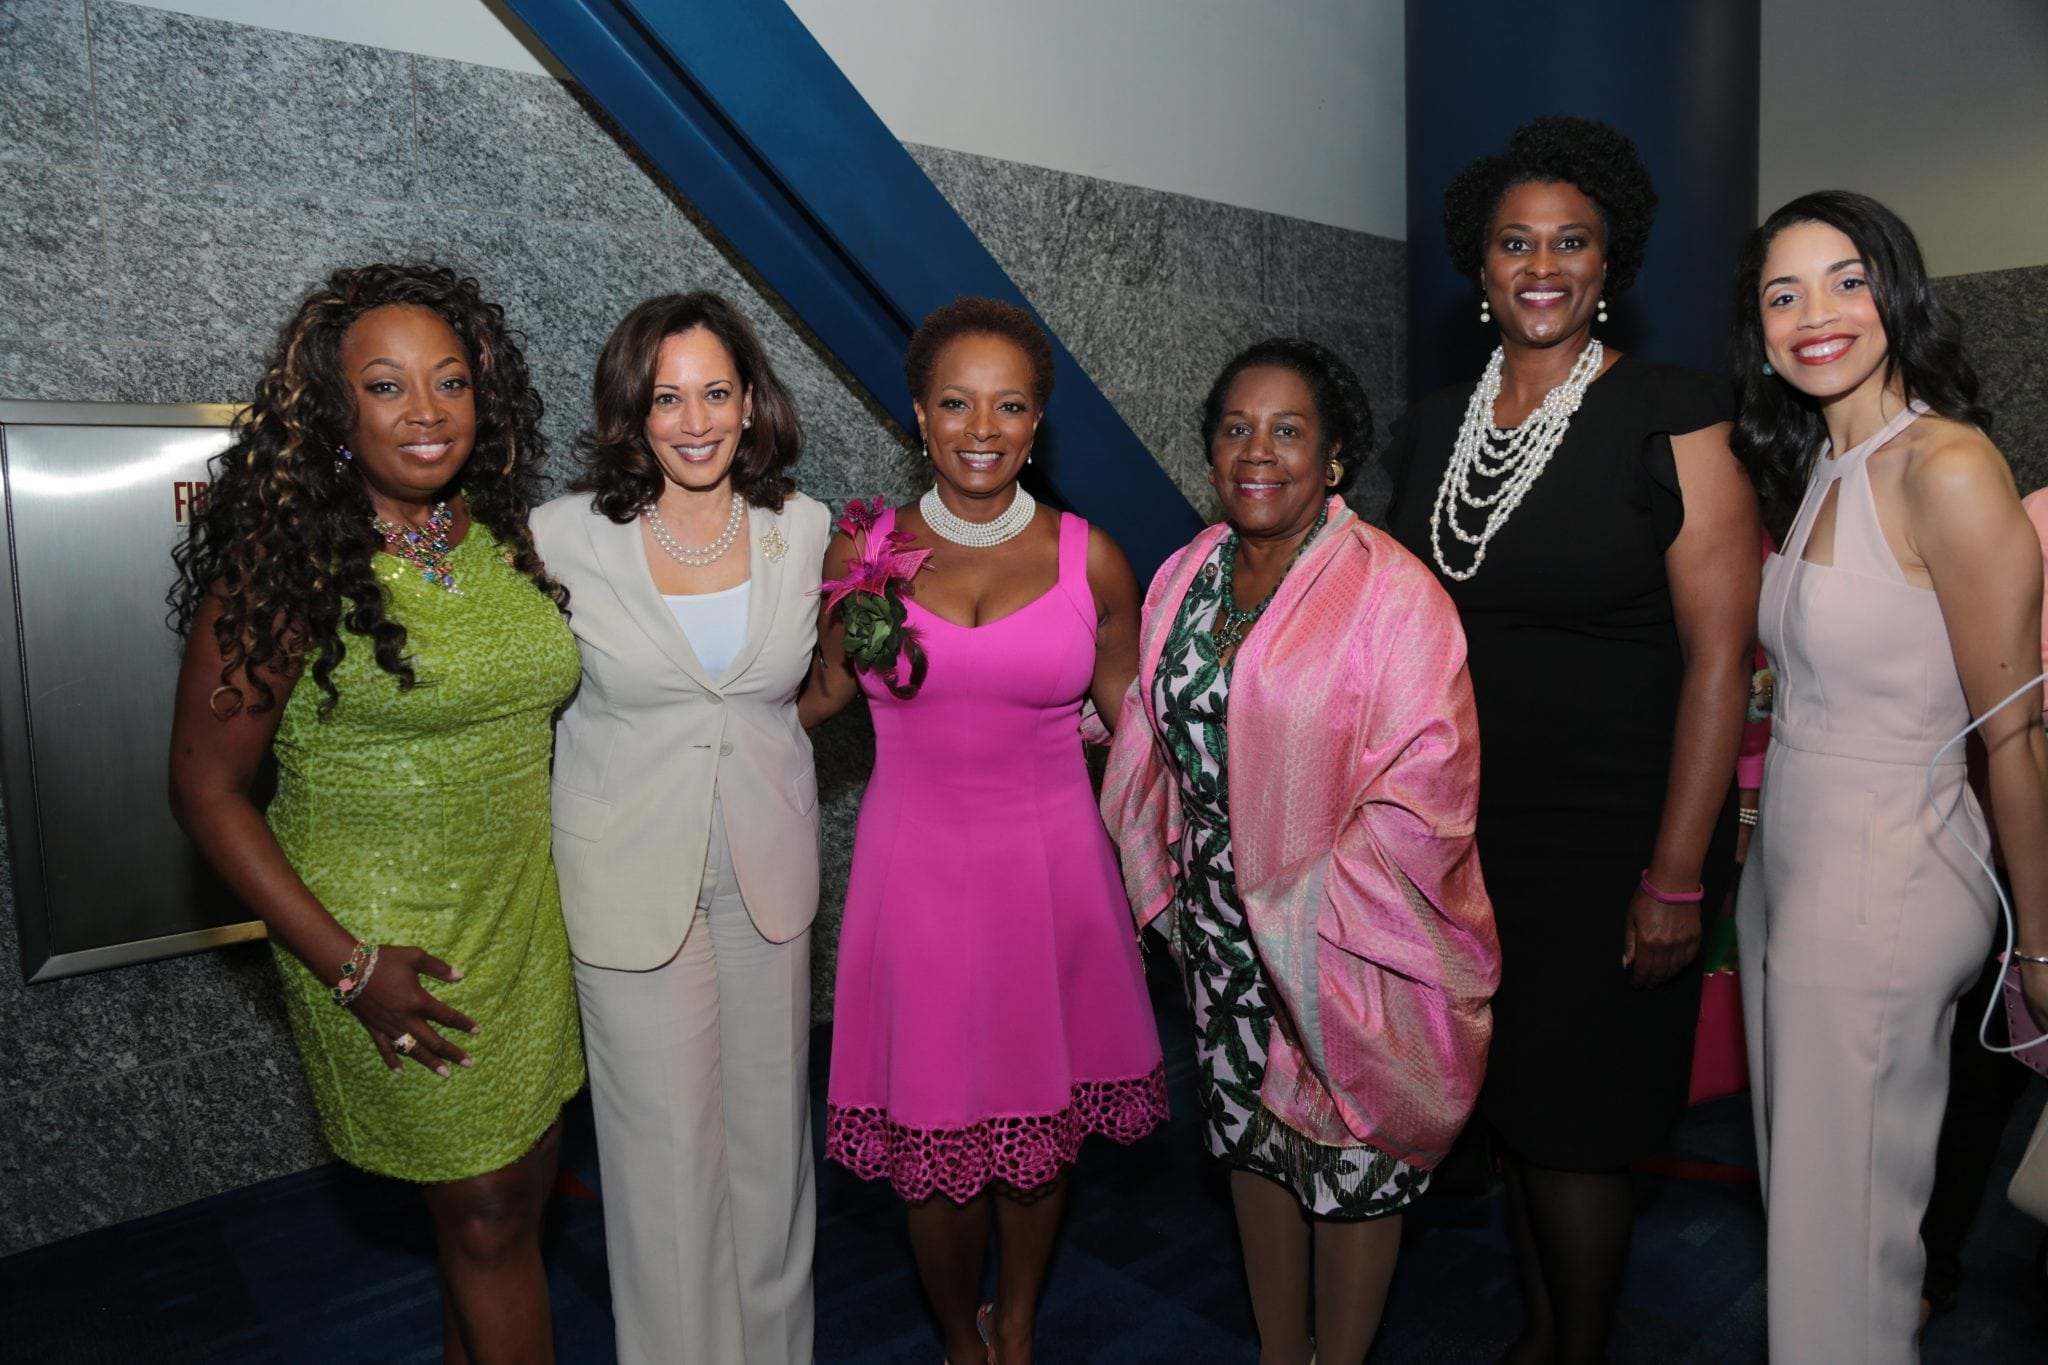 Alpha Kappa Alpha Sorority, Inc.'s 68th Boule in Houston, Texas: Great  Legacy of Leadership and Service - d-mars.com Houston Black Business  Journal and Directory